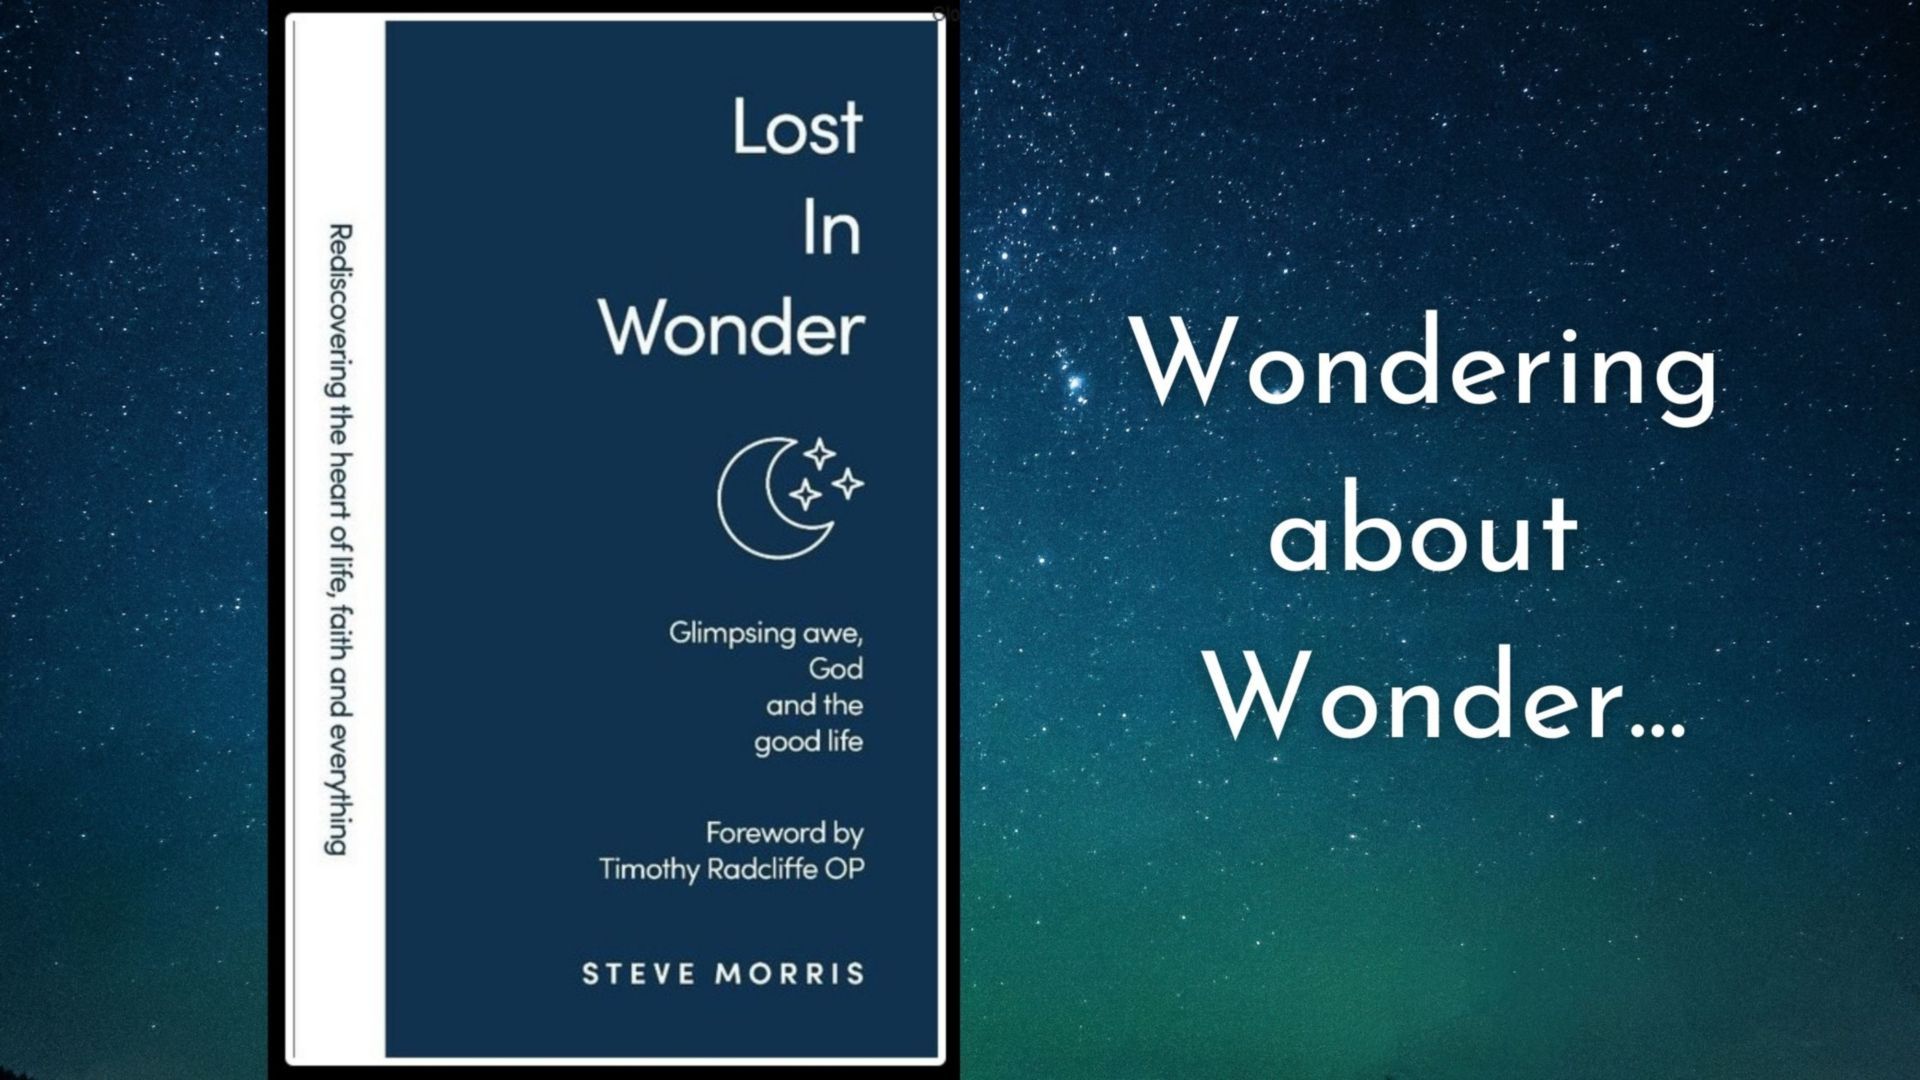 Interview with Steve Morris, author of the book 'Lost in Wonder'